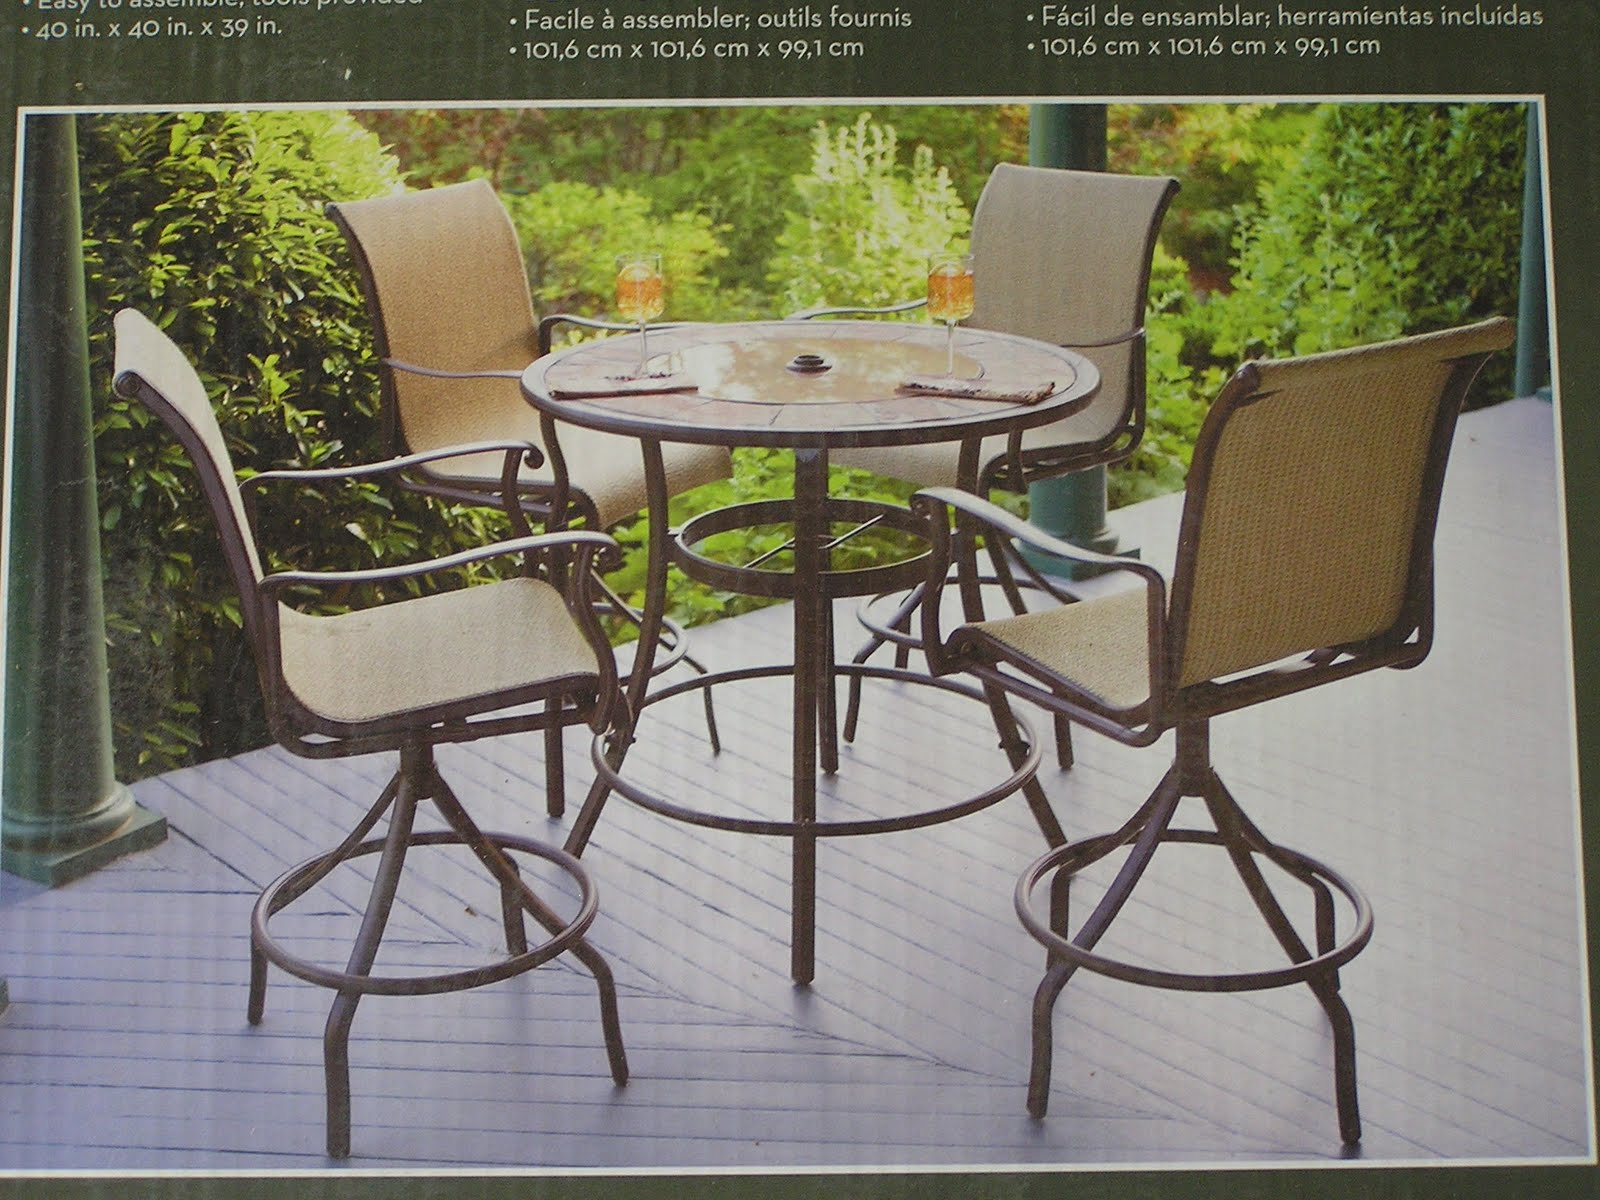 Patio table set patio design ideas for Outside table and chairs